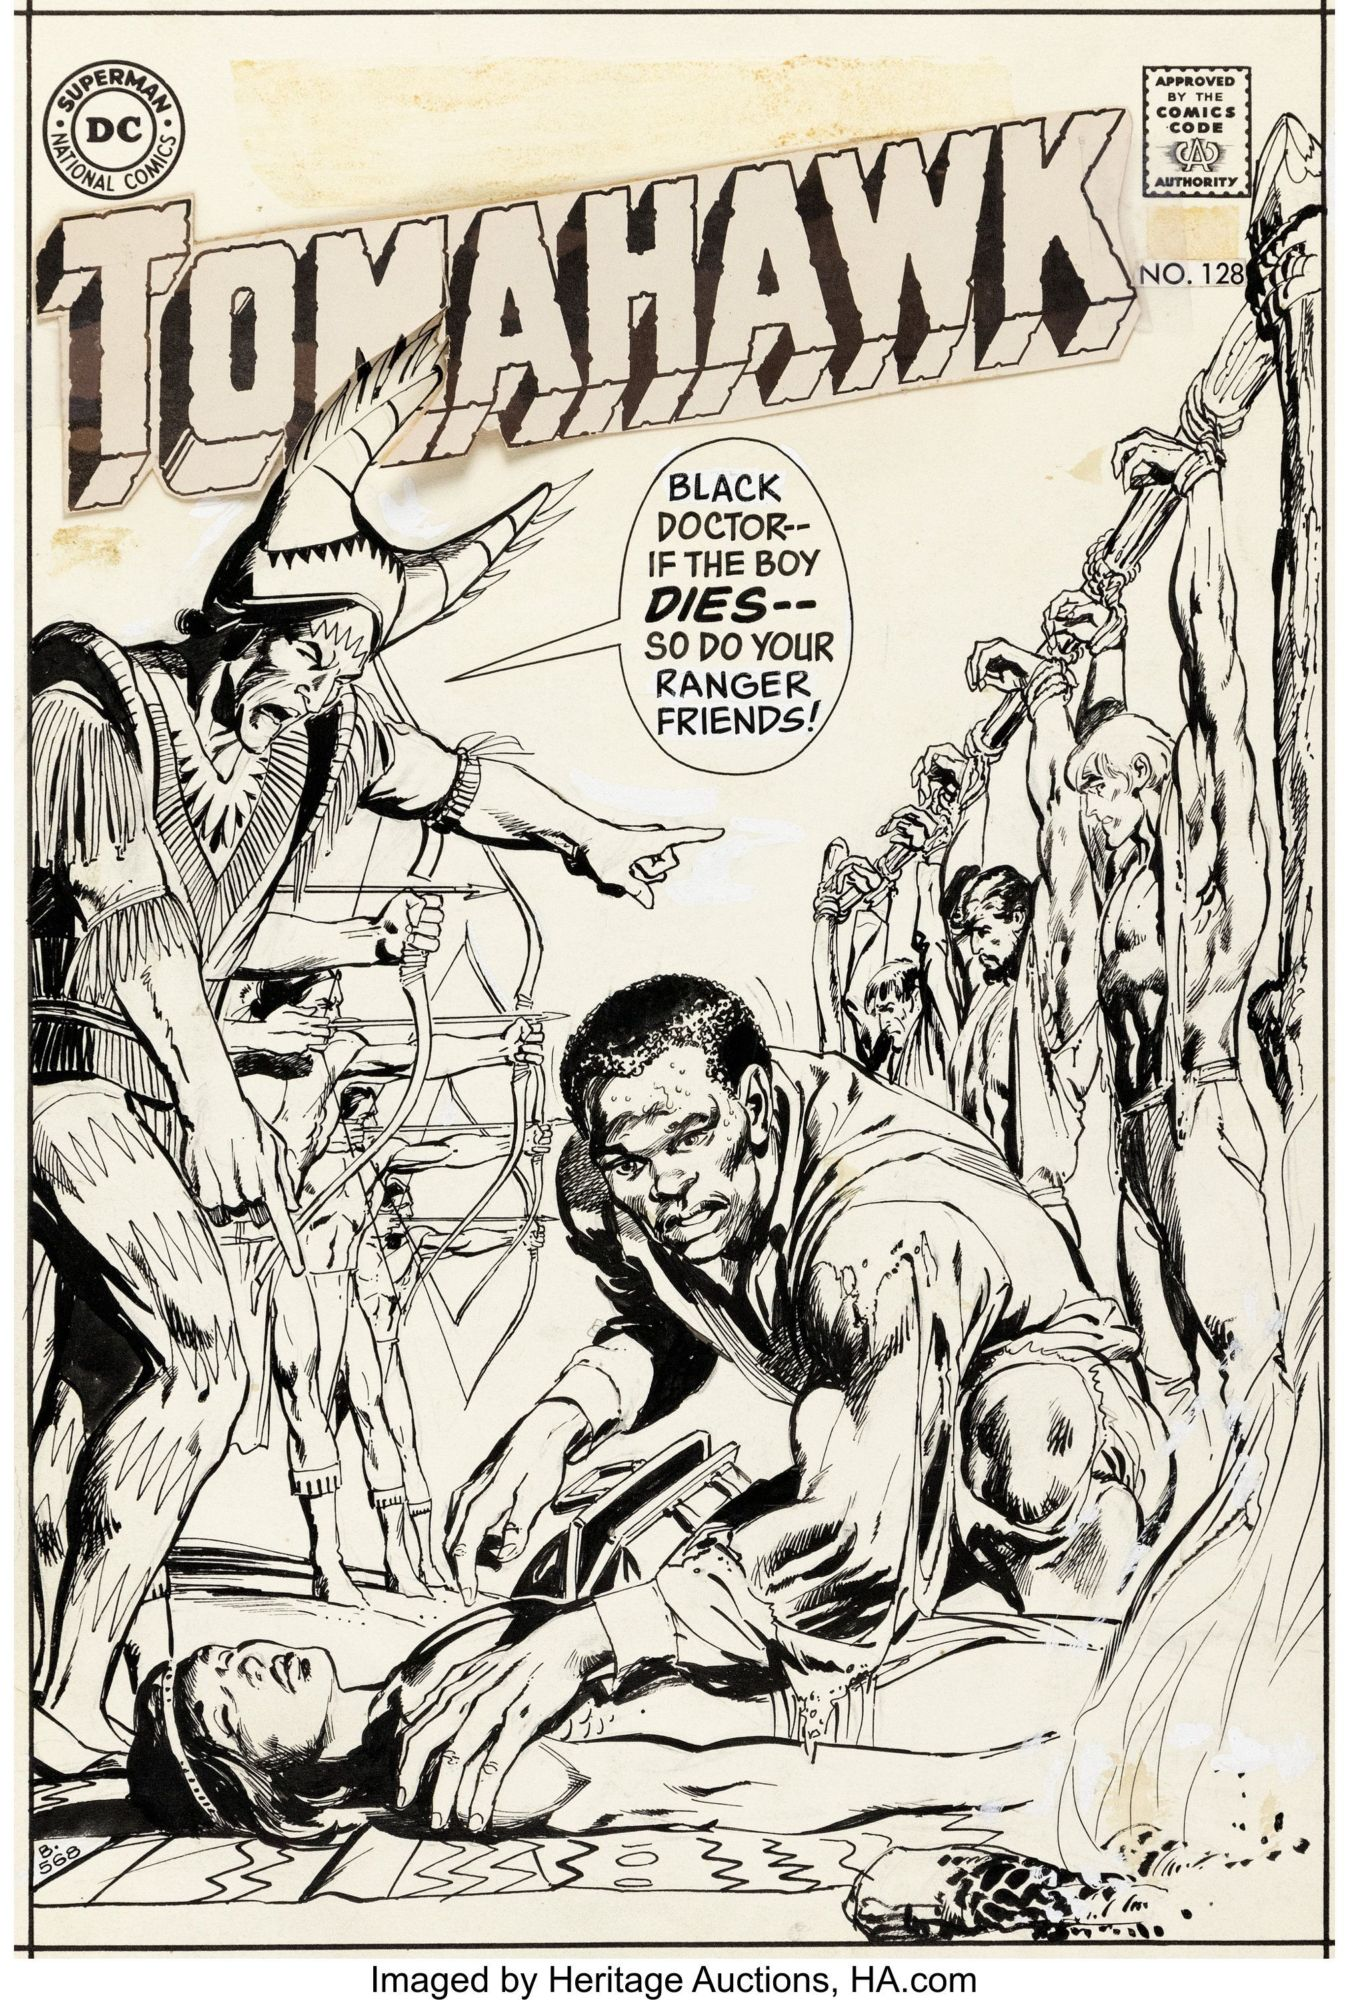 Neal Adams Tomahawk Cover From 1970 Sells for $17,500